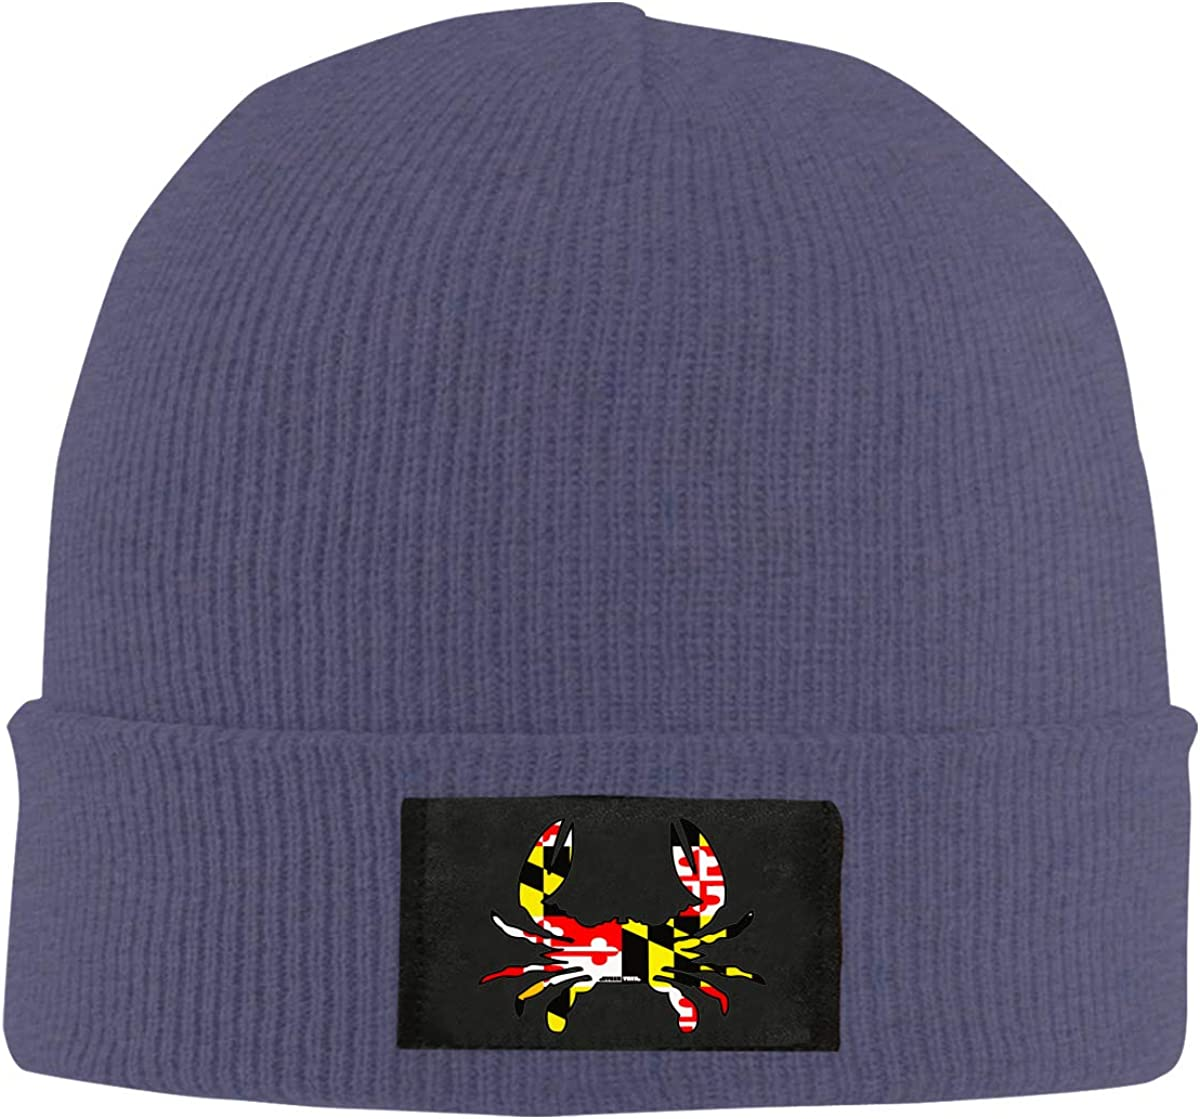 100/% Acrylic Winter Skiing Cap BF5Y6z/&MA Mens and Womens Maryland Flag Crab Knitted Cap